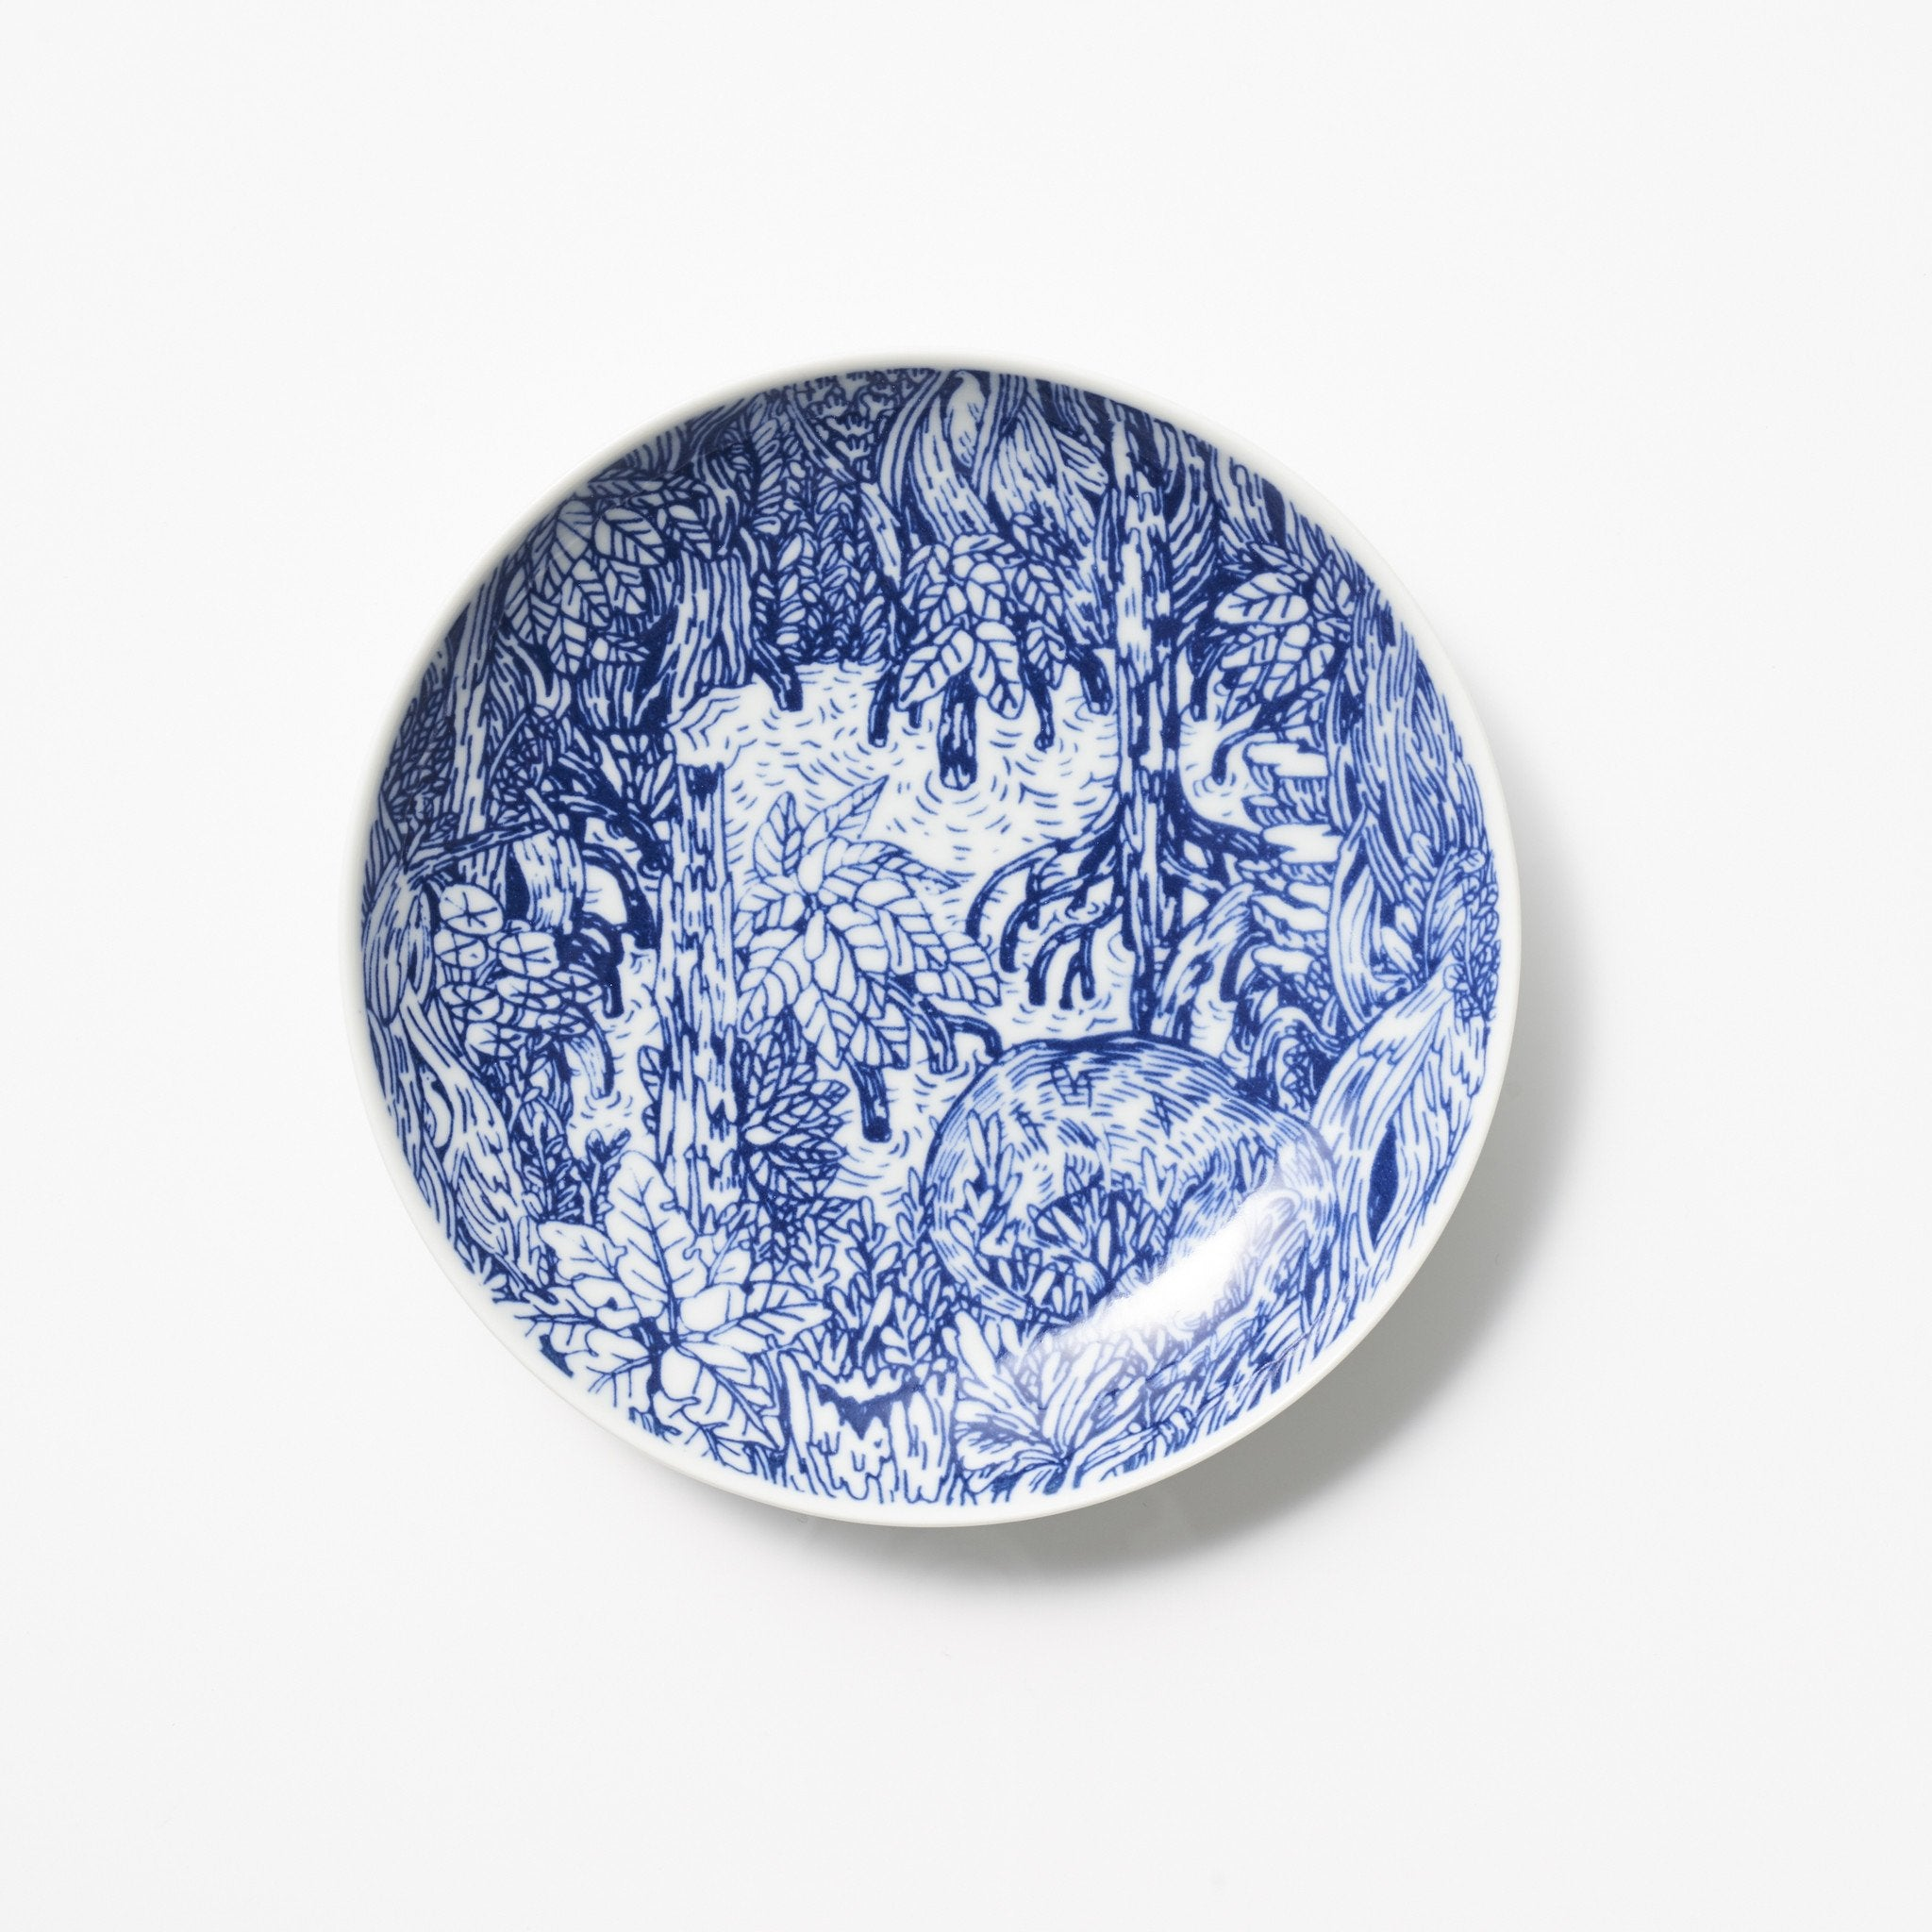 OIC - Otter Porcelain Plate